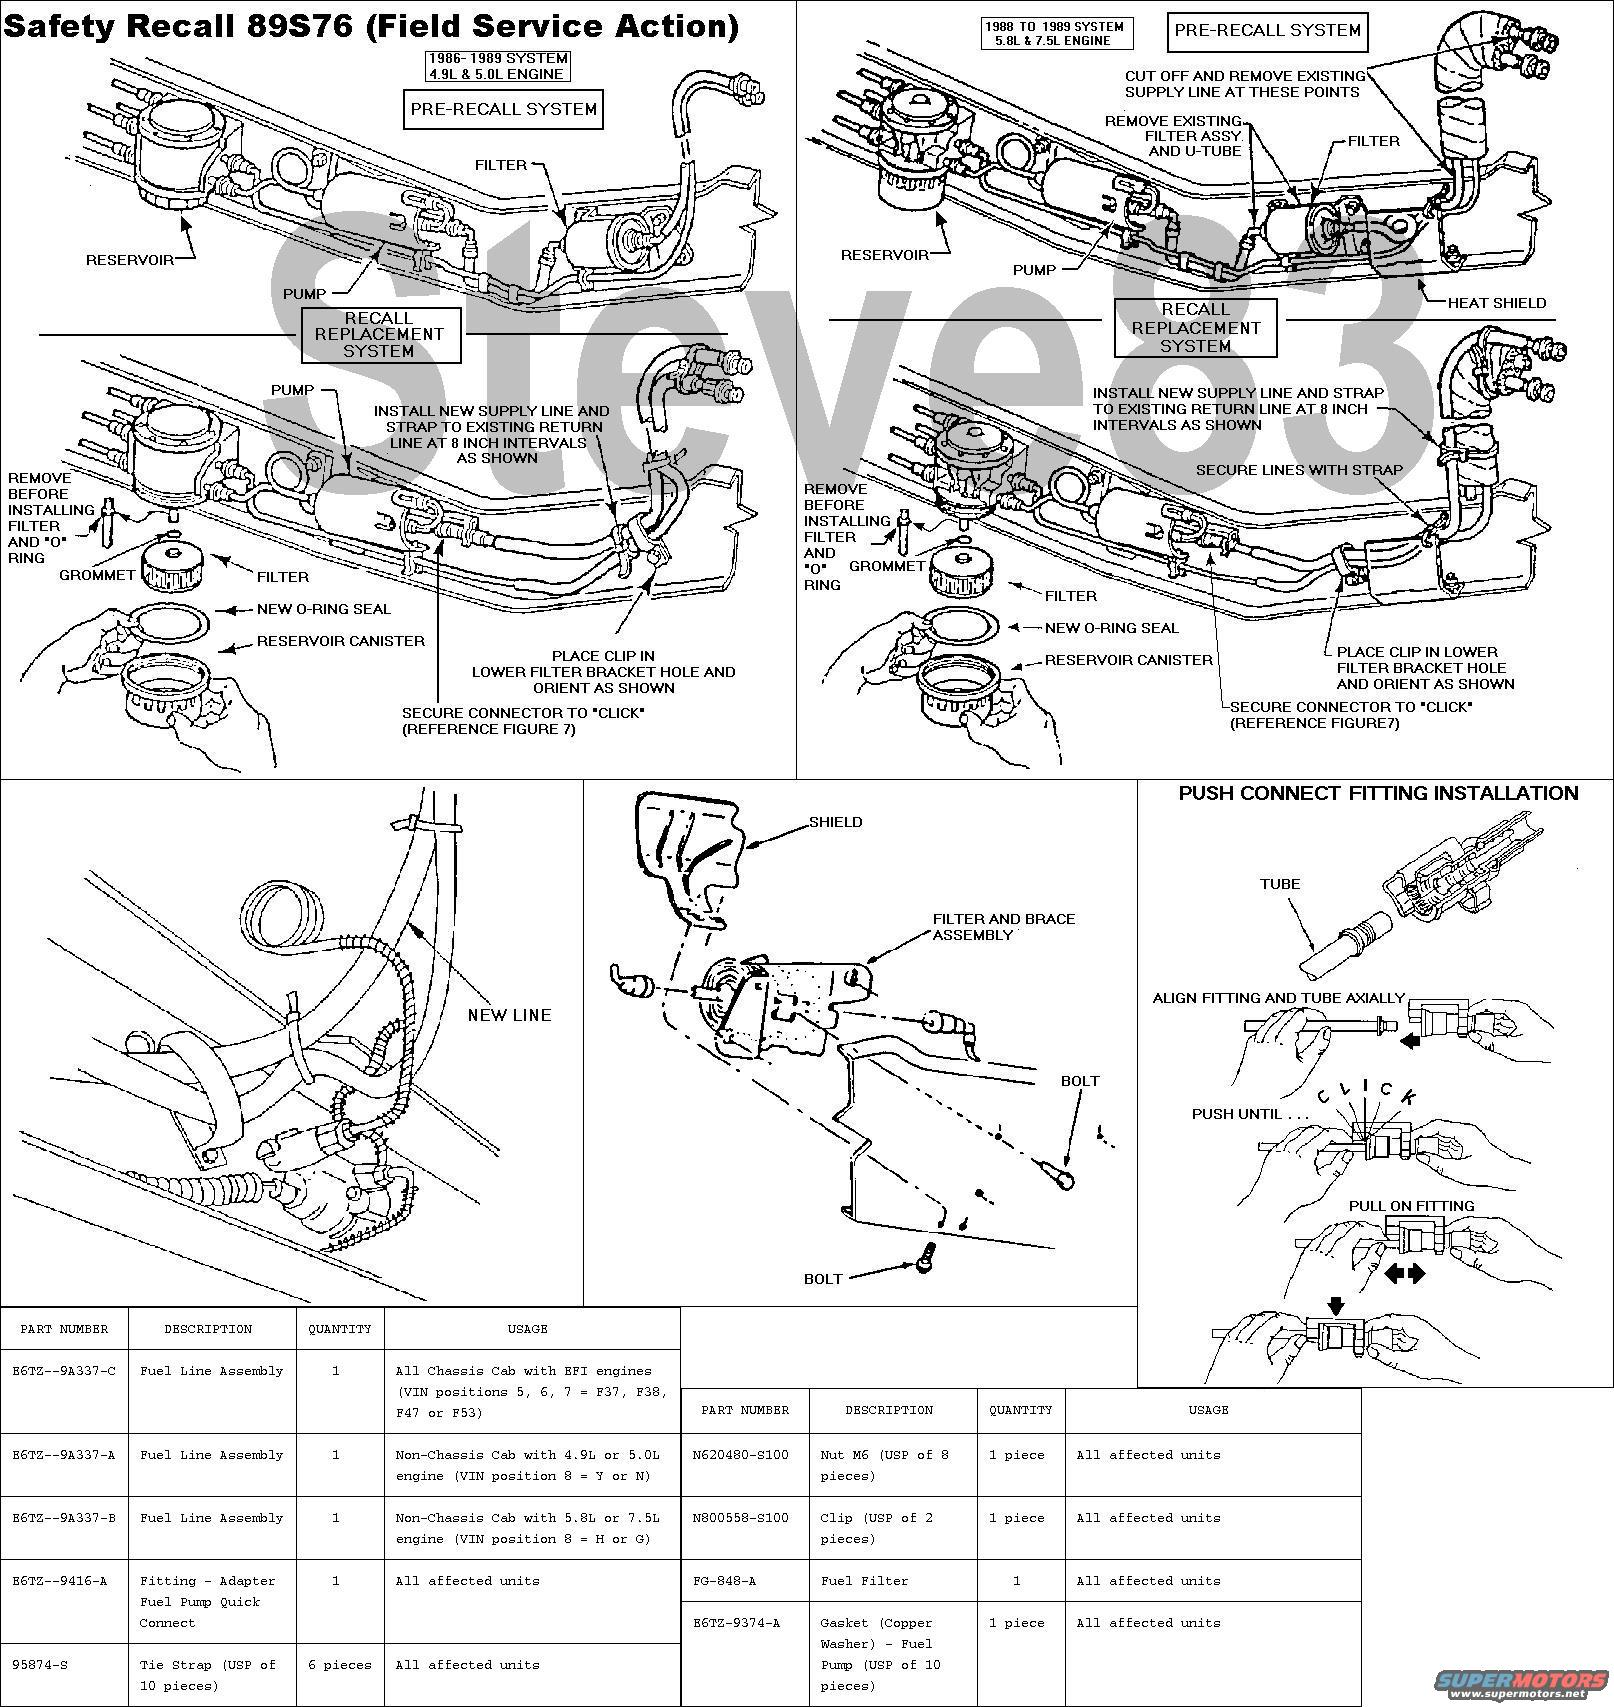 2009 Ford Focus Wiring Diagram 96 Ford Bronco Wire Harness In Addition